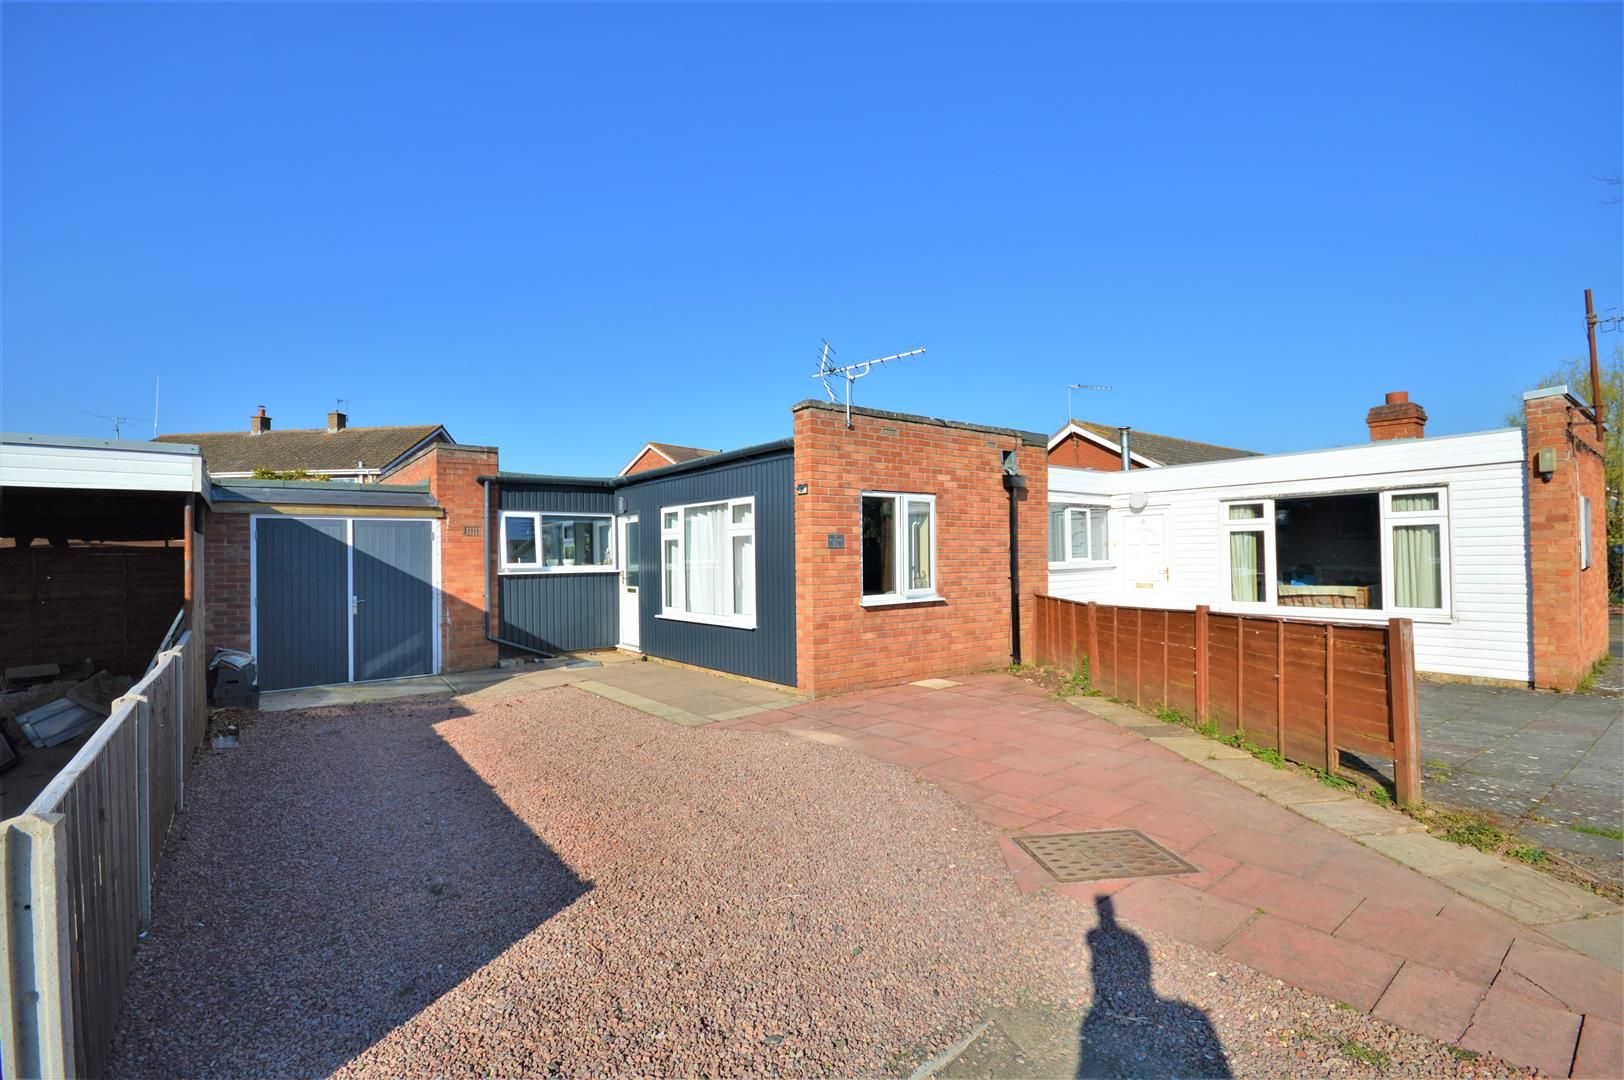 2 bed semi-detached-bungalow for sale in Marden 1